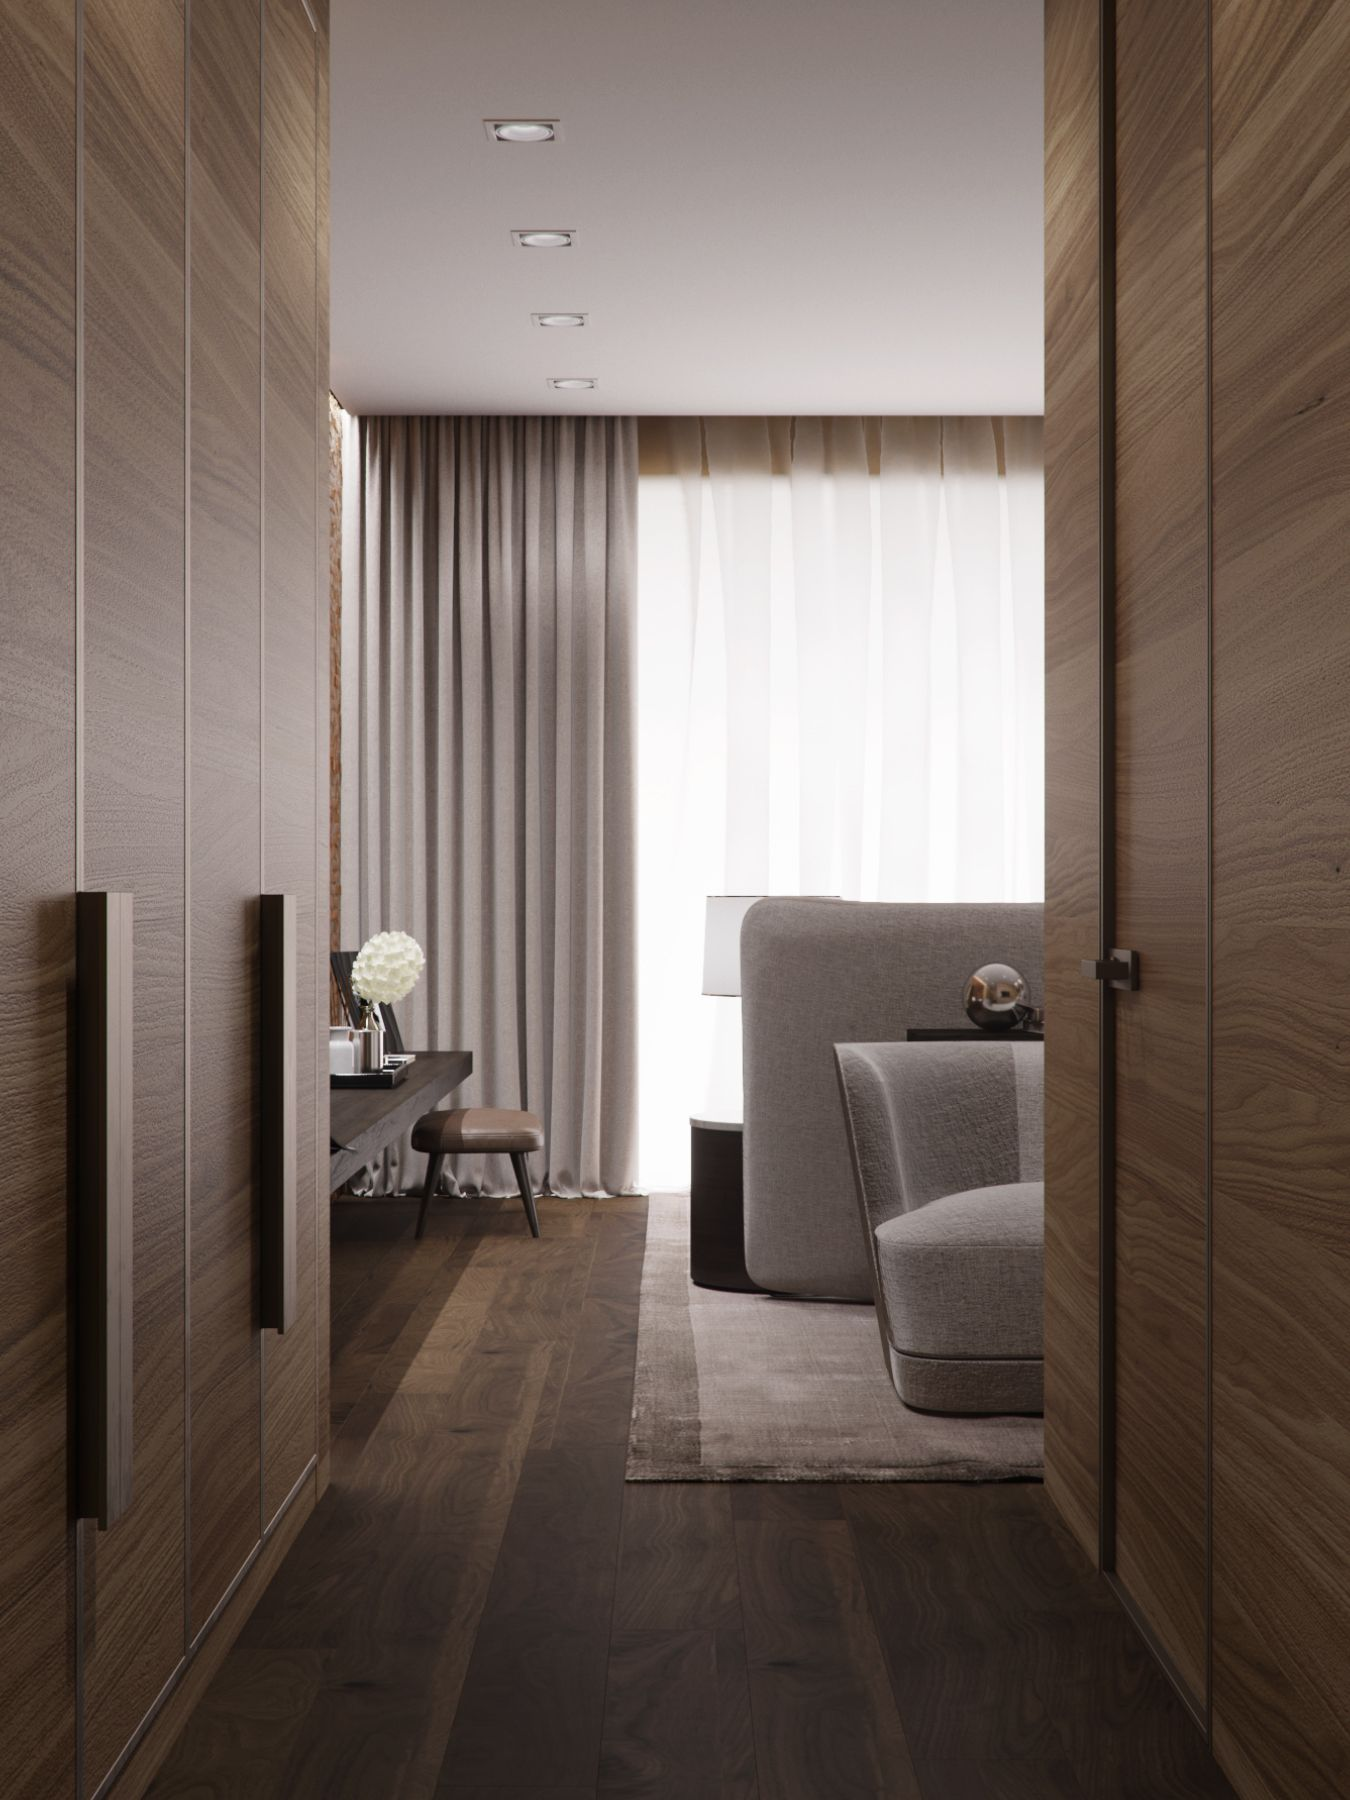 Hotel Bedroom: 3D Rendering Of Hotel Rooms